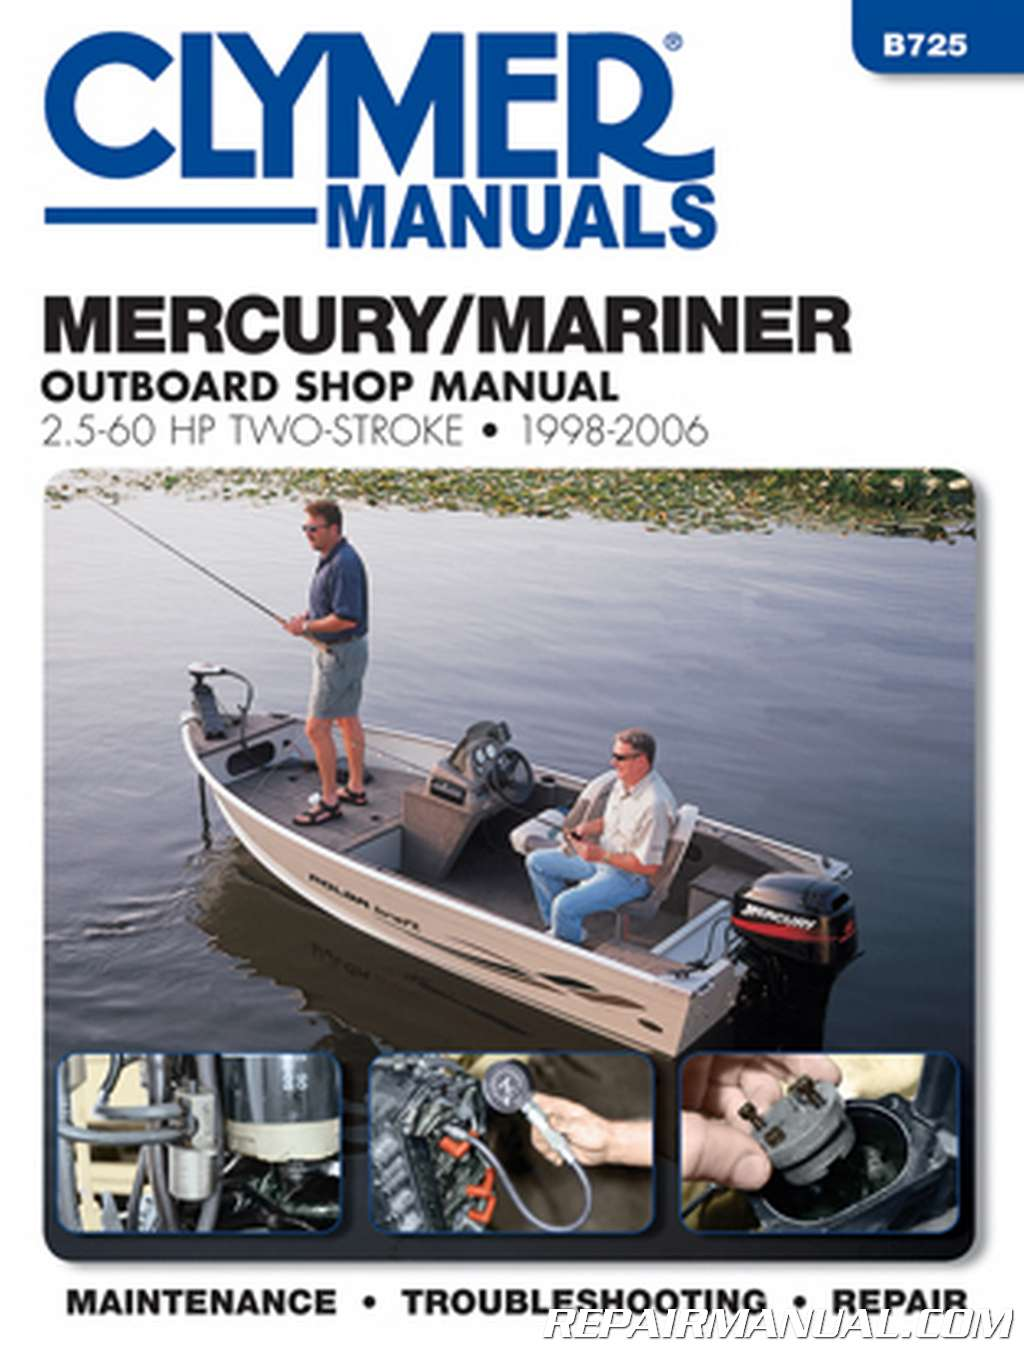 1998 2006 mercury mariner 25hp 60hp outboard boat engine repair manual rh repairmanual com 1.5 HP Mercury Mariner Outboard mercury mariner outboard motor repair manuals